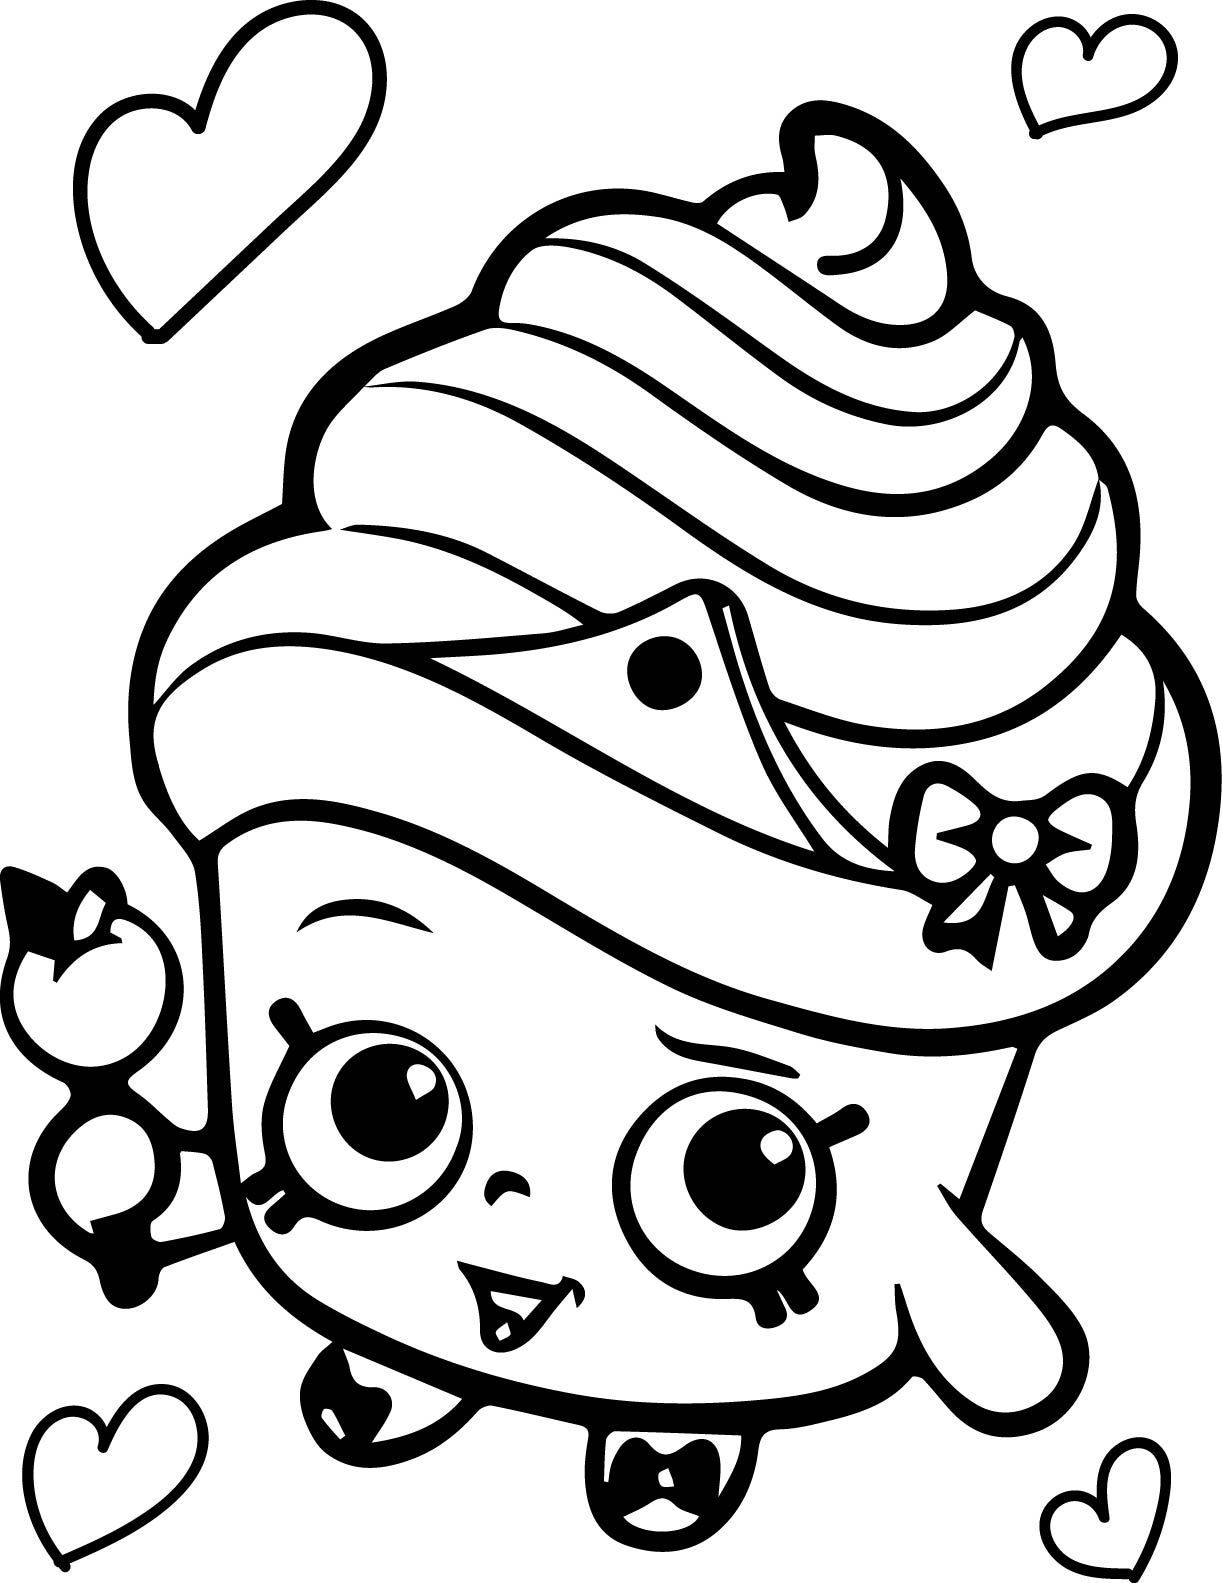 Shopkins Cupcake Queen Coloring Page Wecoloringpage